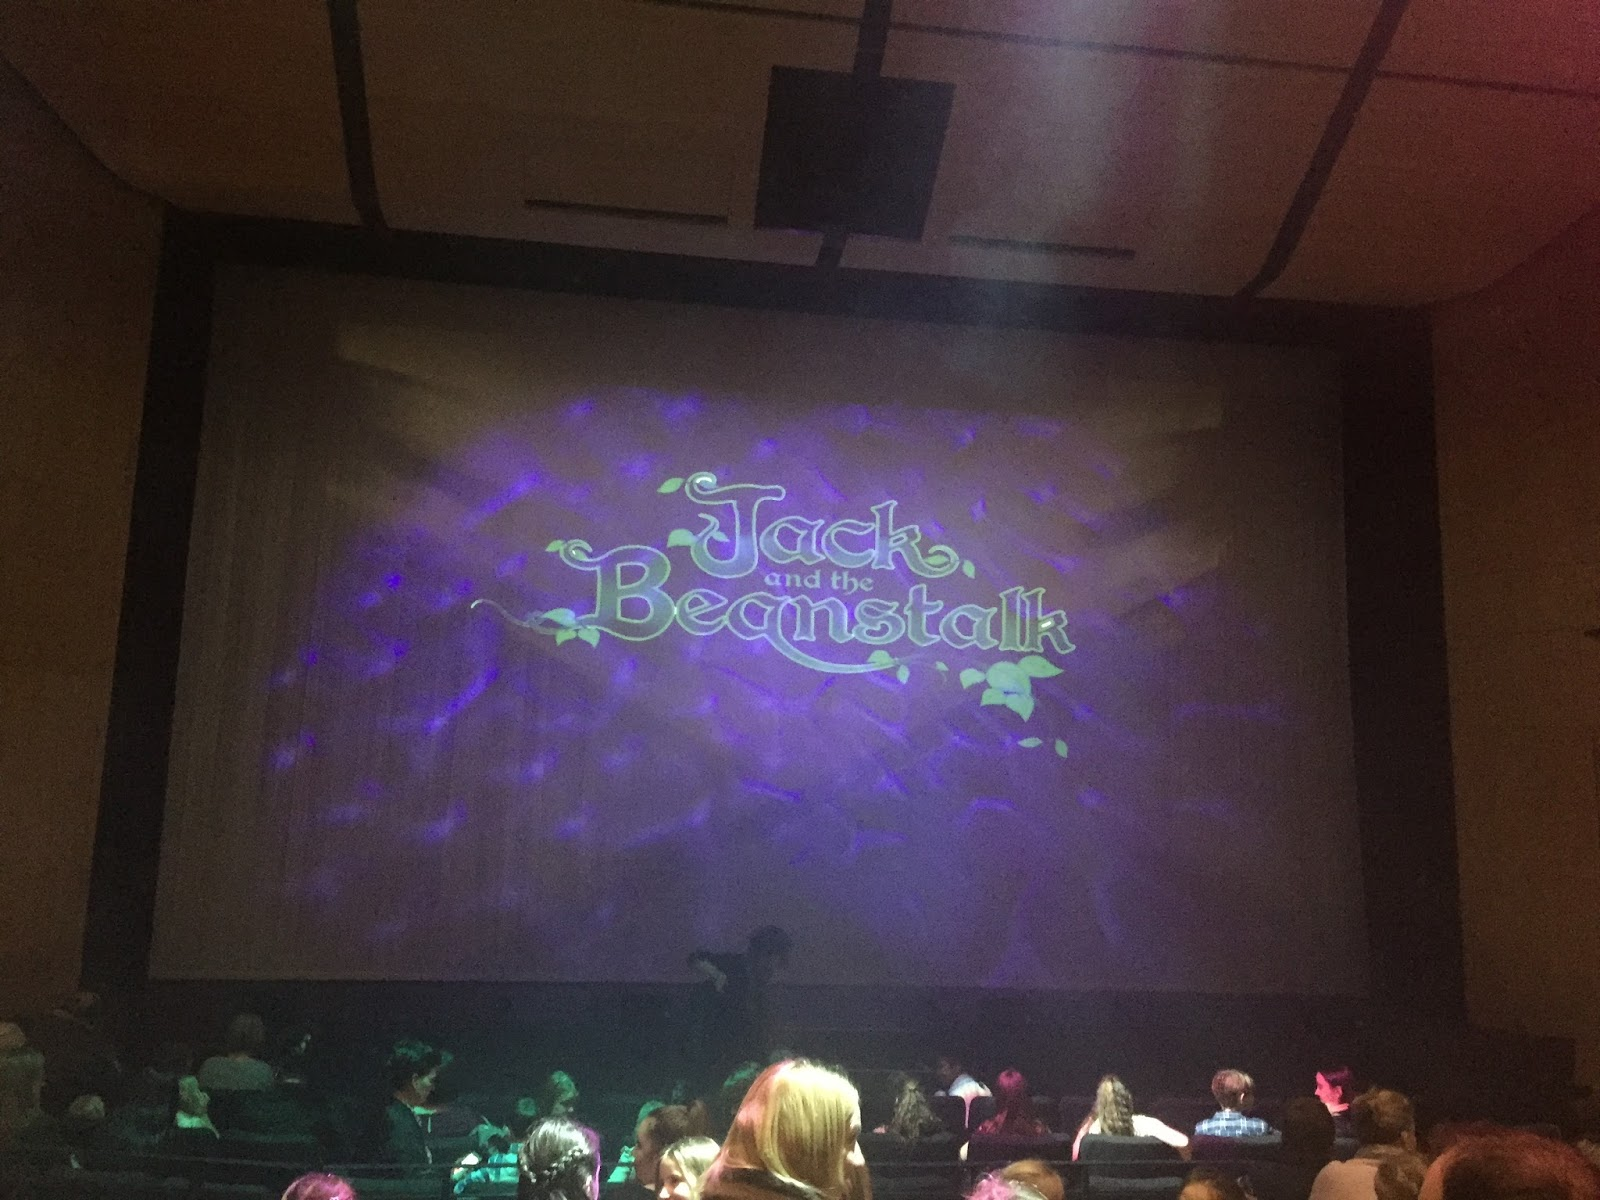 Jack and the Beanstalk Pantomime at Gala Theatre, Durham - A review